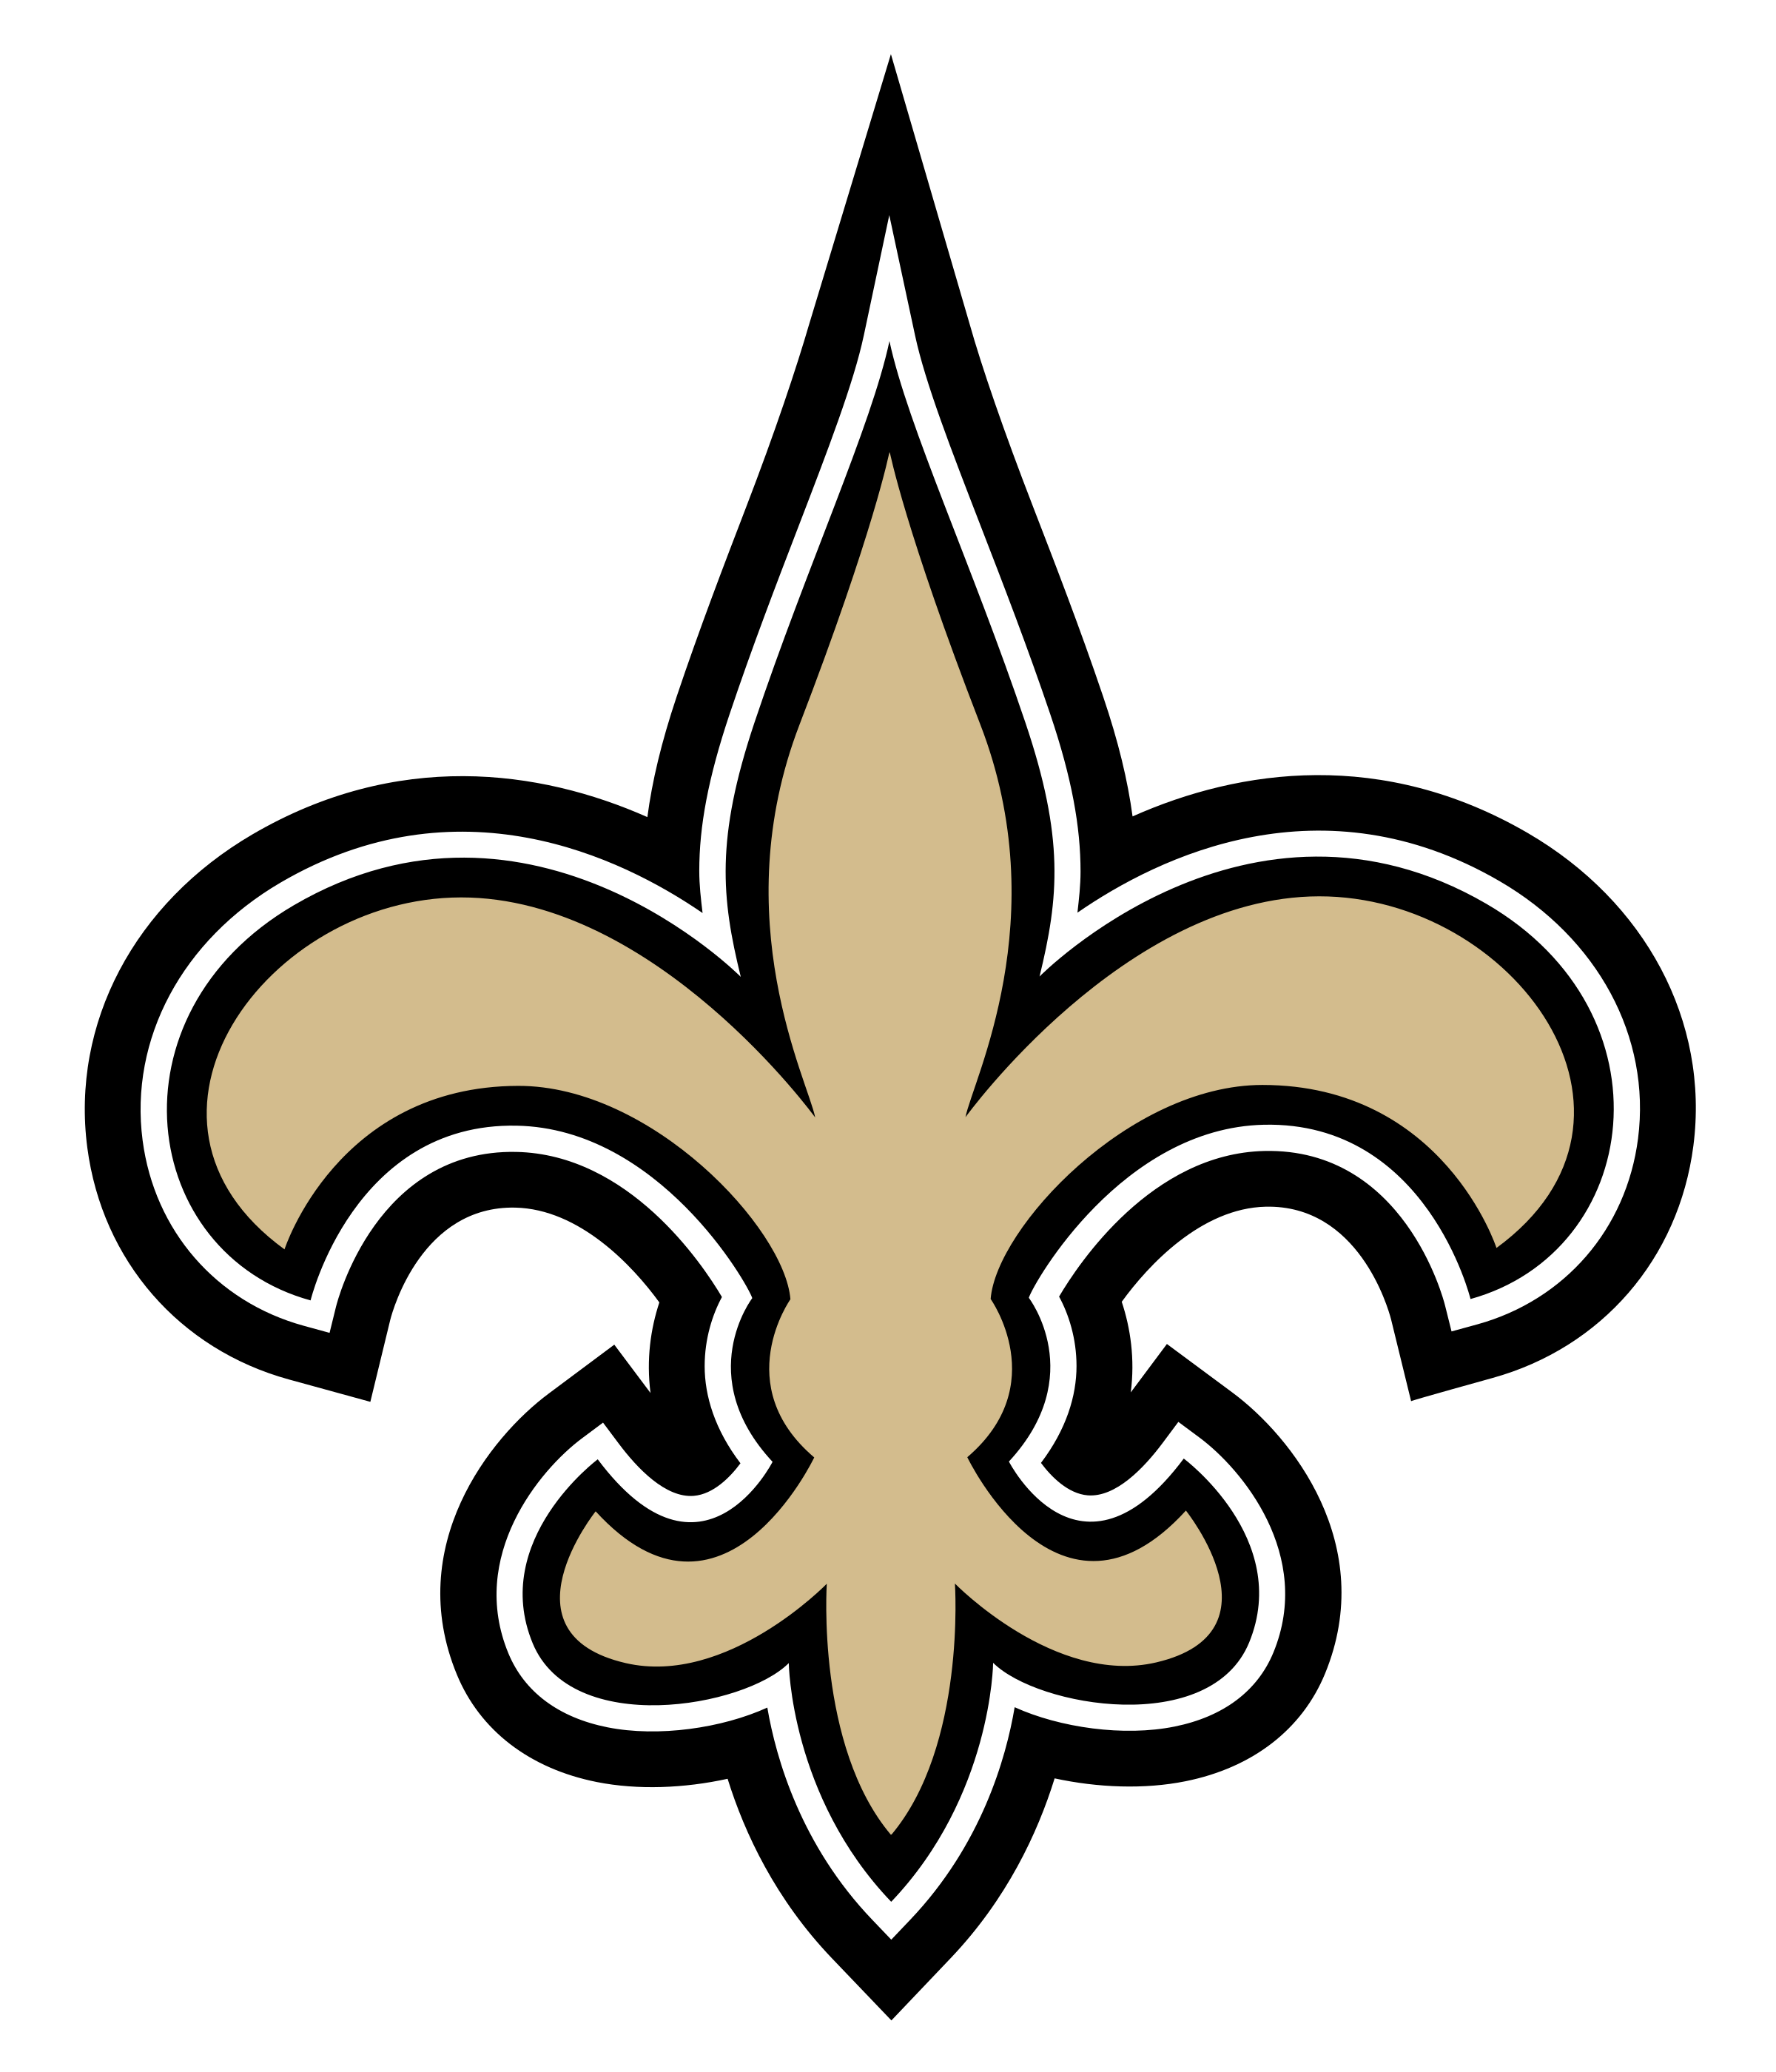 new orleans saints logo png transparent svg vector freebie supply rh freebiesupply com new orleans saints logo vector saint seiya logo vector